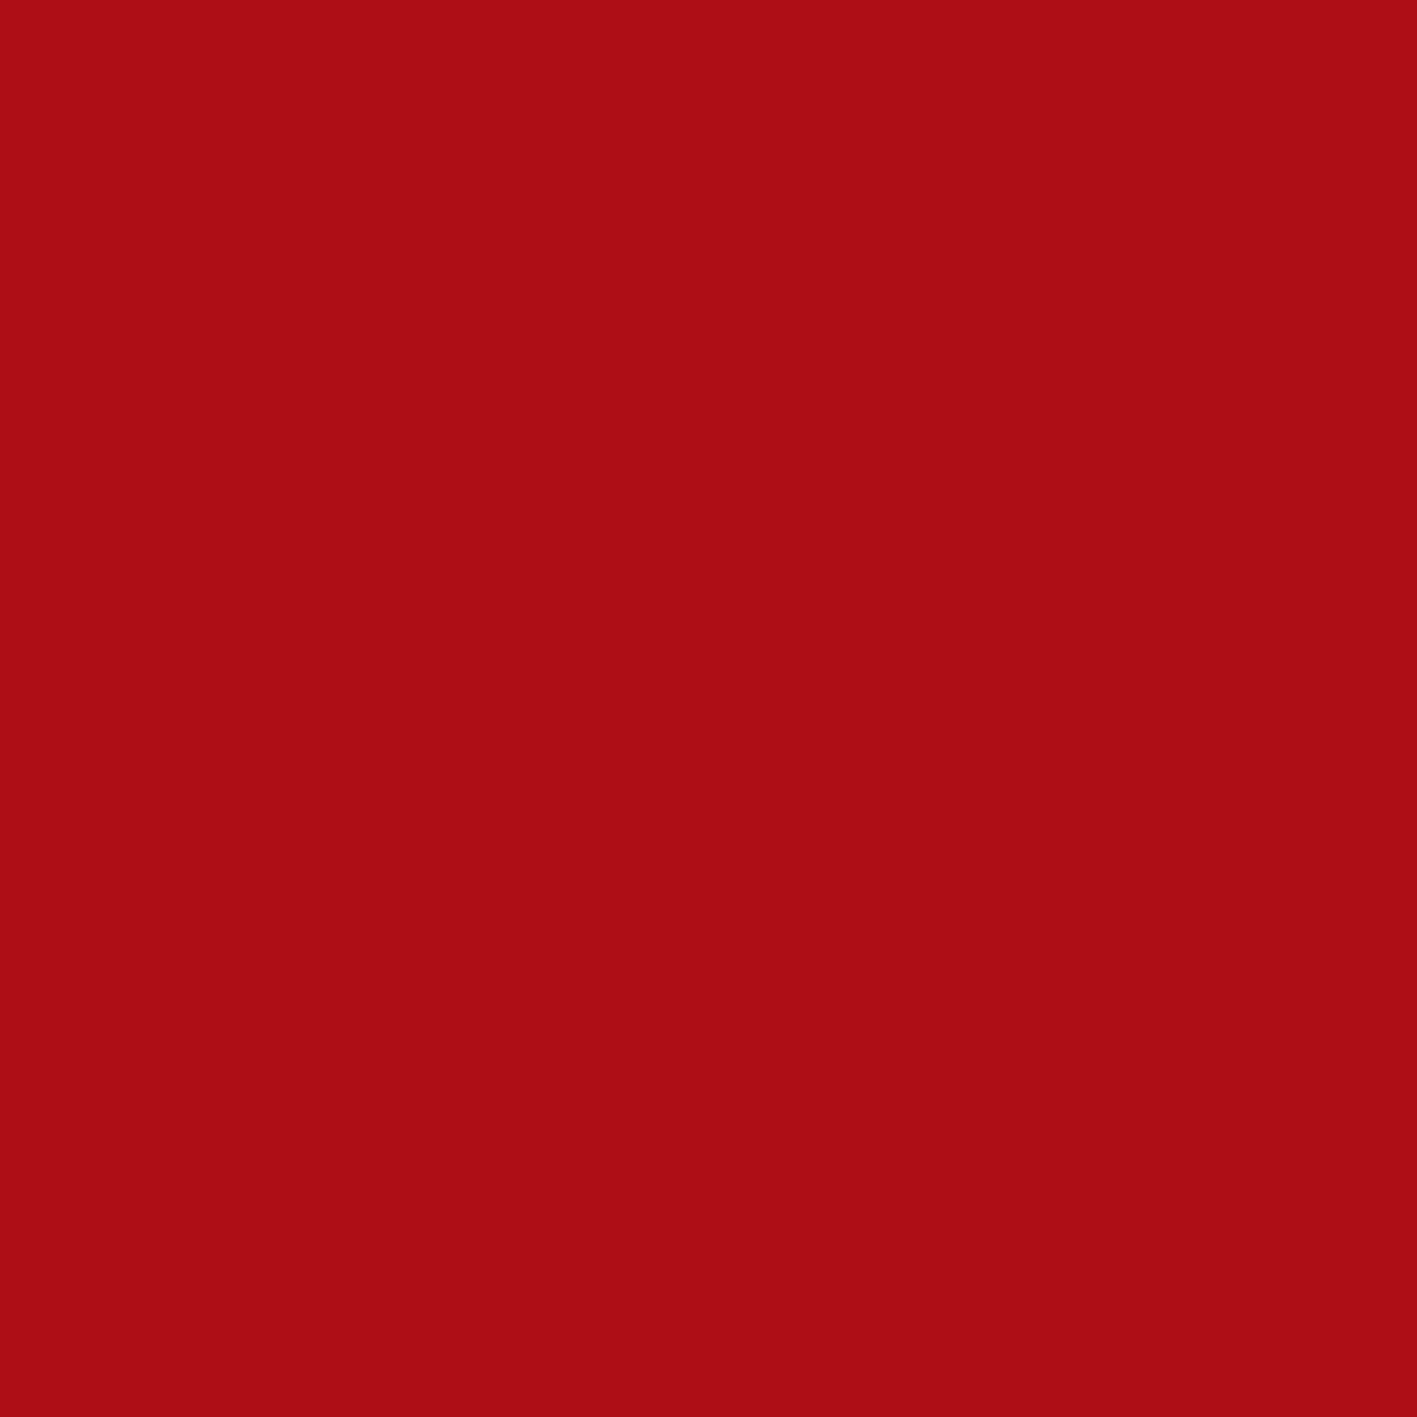 RAL 3013 Tomato Red*